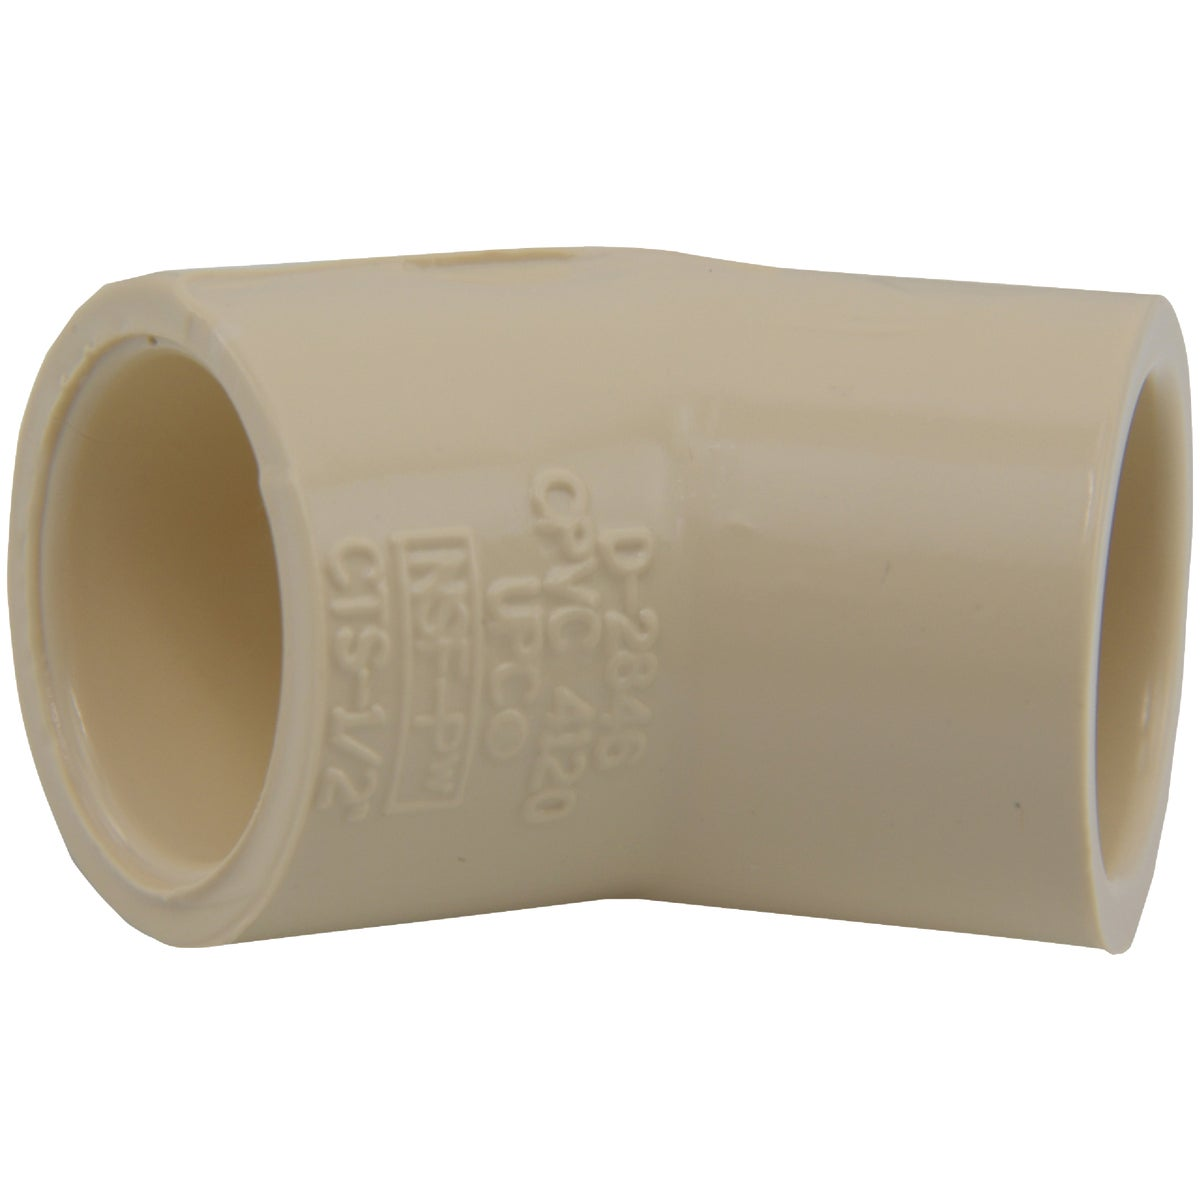 "1/2"" CPVC 45D ELBOW - 50605 by Genova Inc"